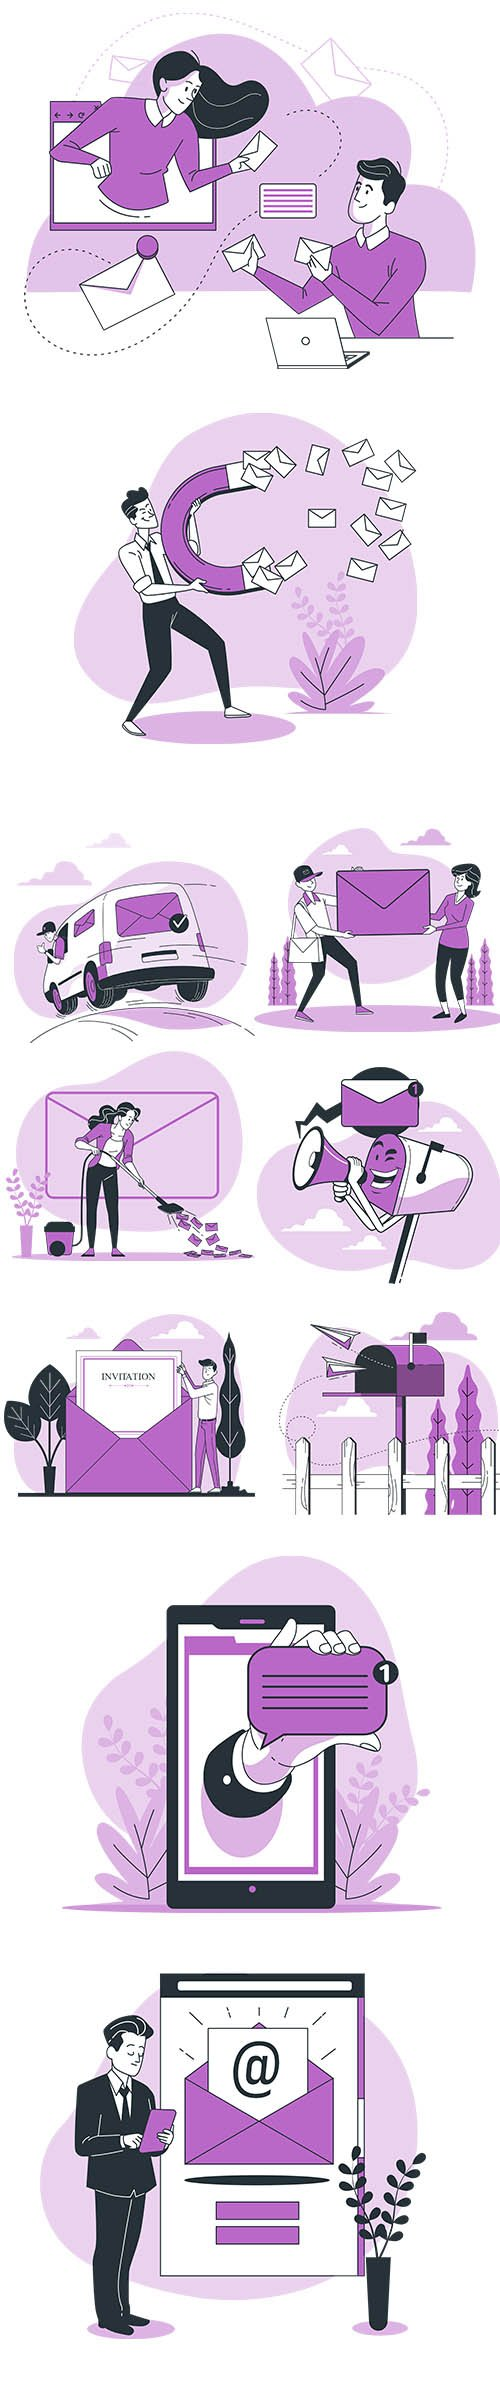 Vector People Live Situation Illustrations Email Concept Vol 8